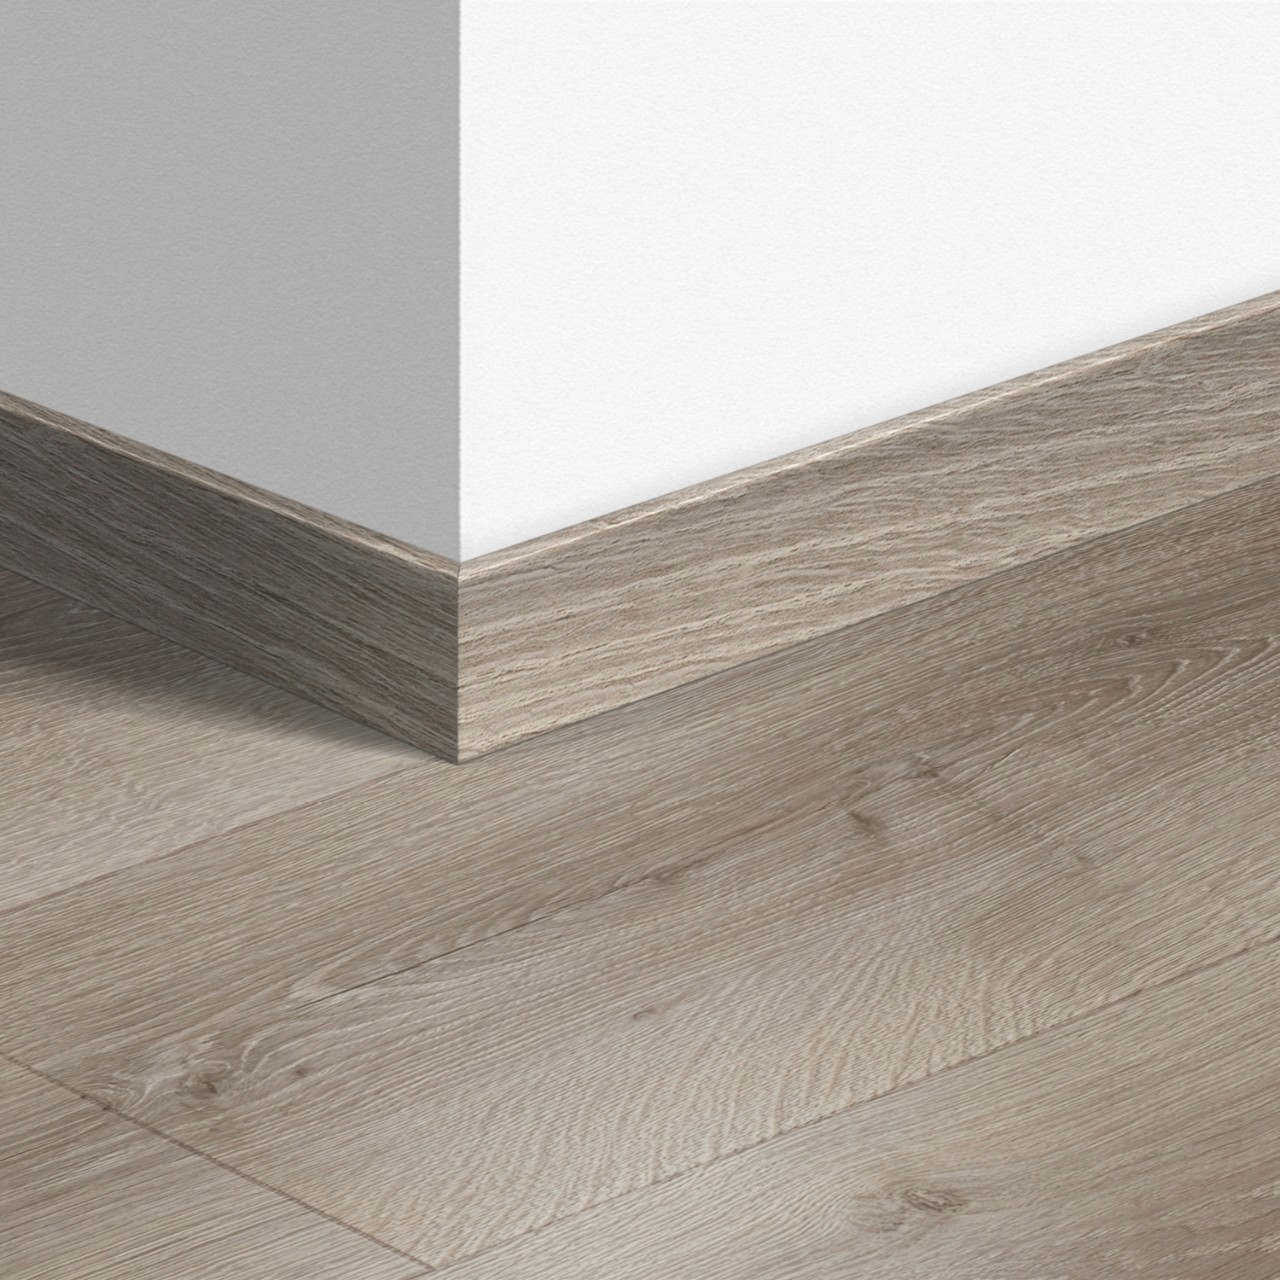 QSSK Laminate Accessories Desert Oak Brushed Grey QSSK03552